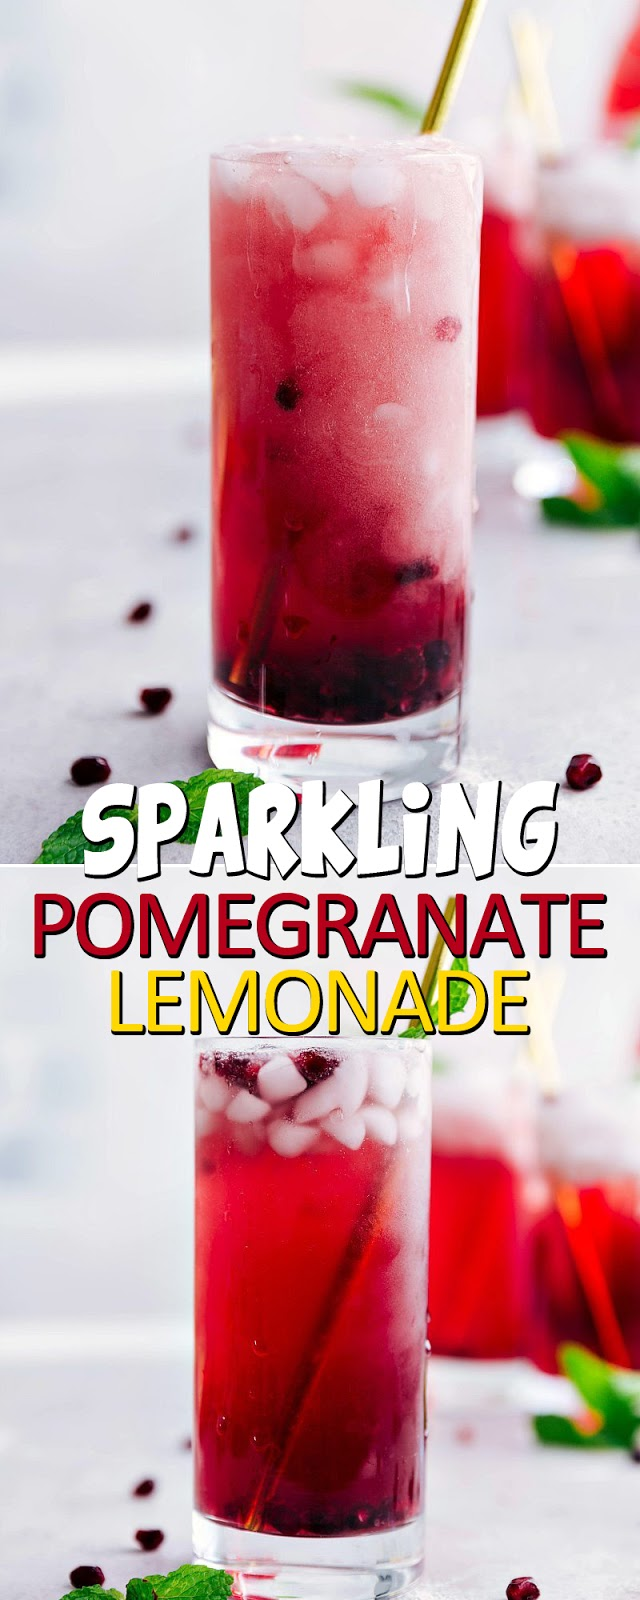 SPARKLING POMEGRANATE LEMONADE